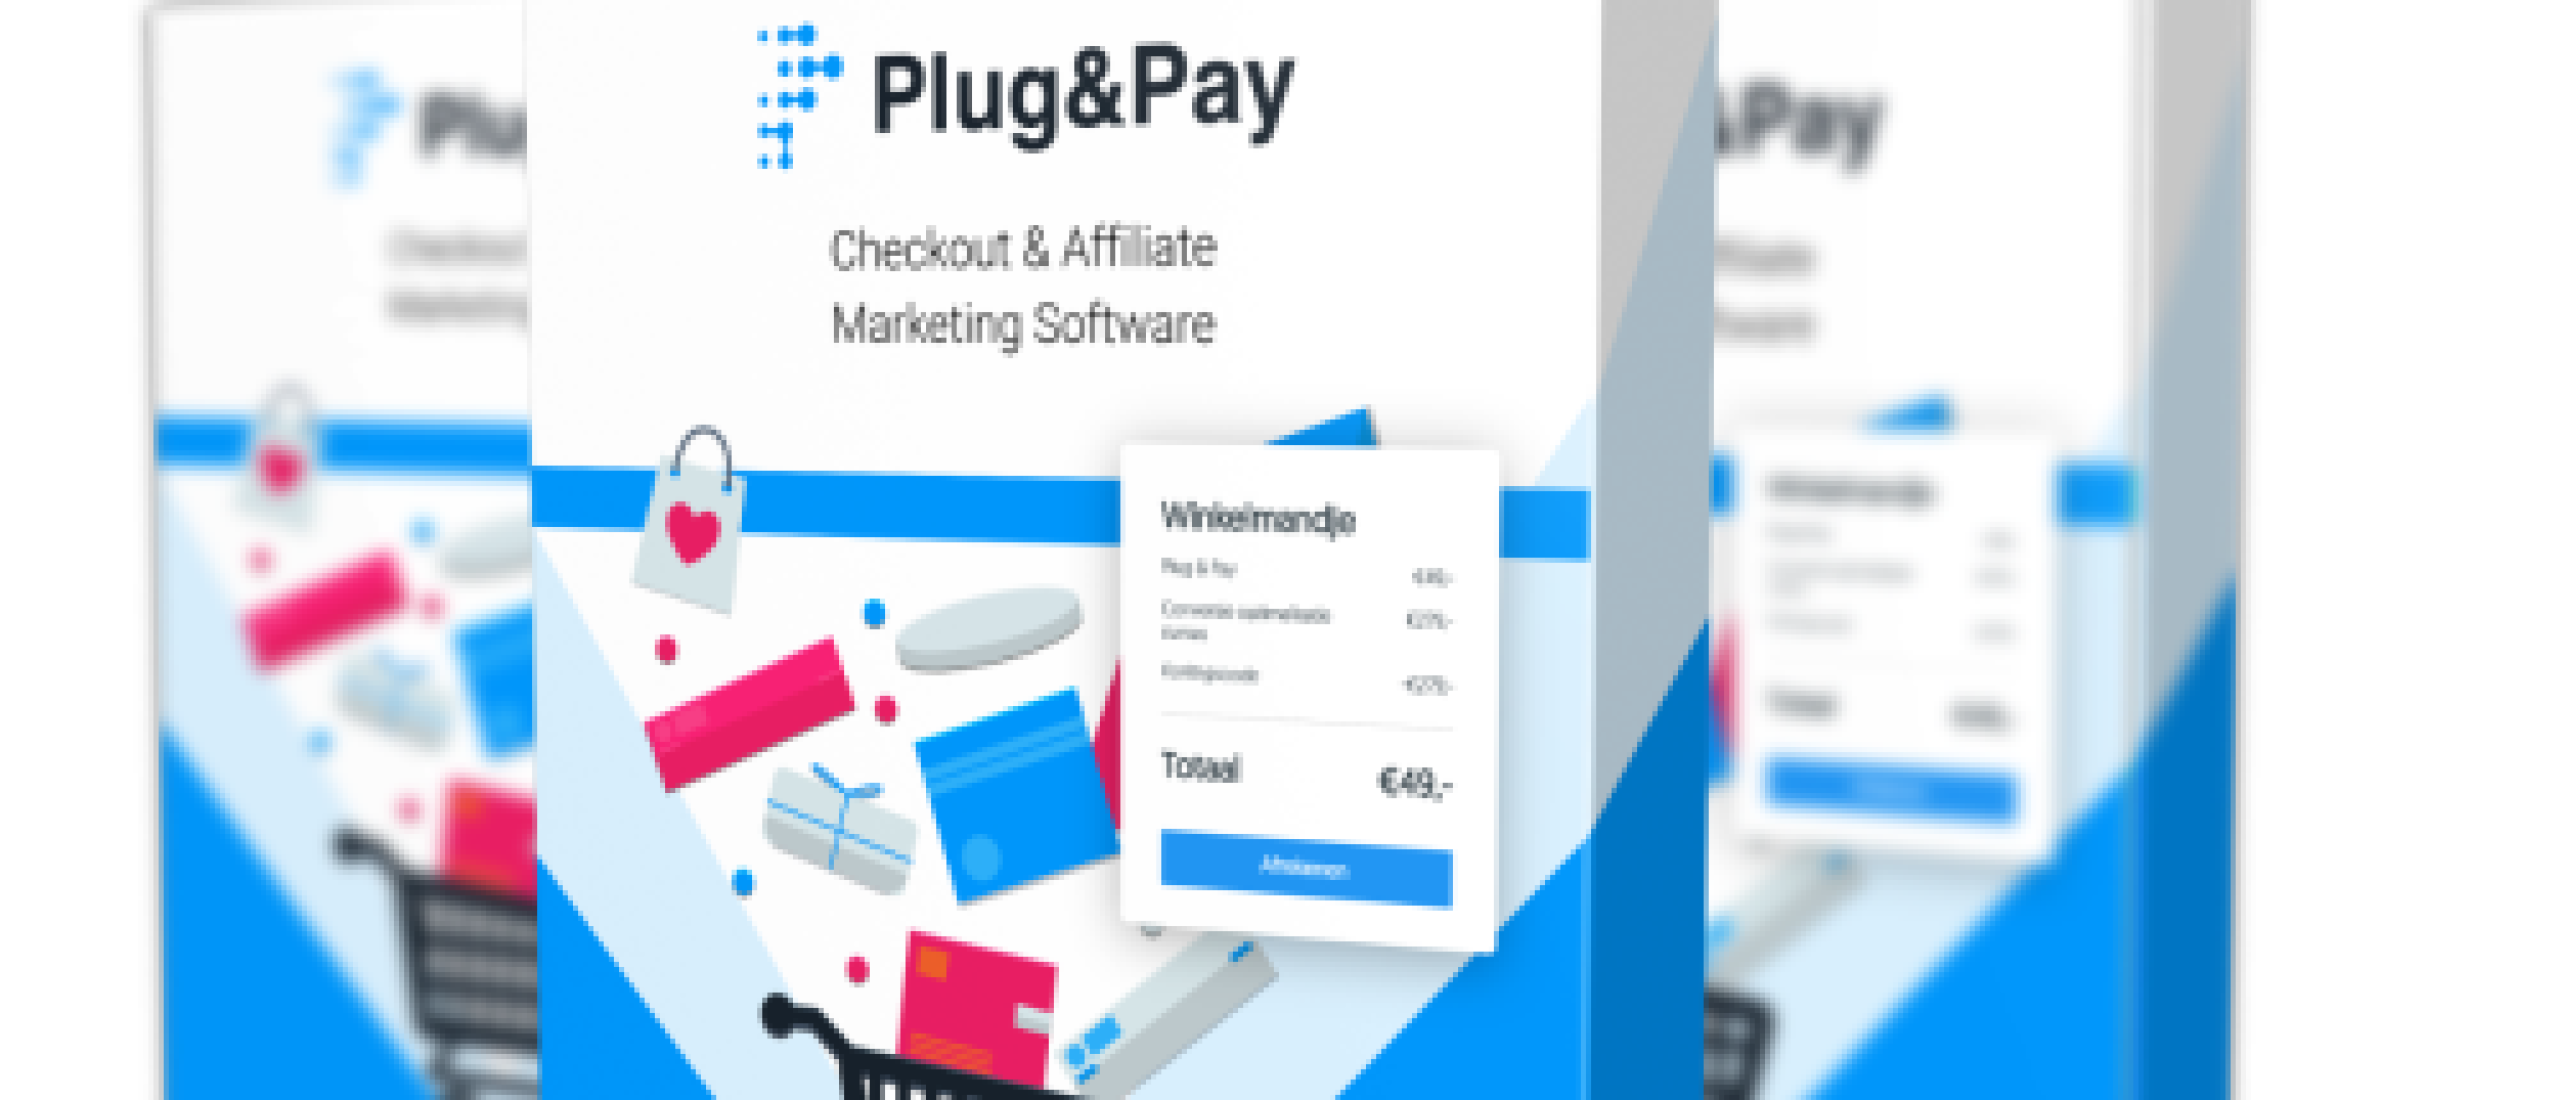 Plug and Pay Software Review - Nummer 1 betaalsoftware?